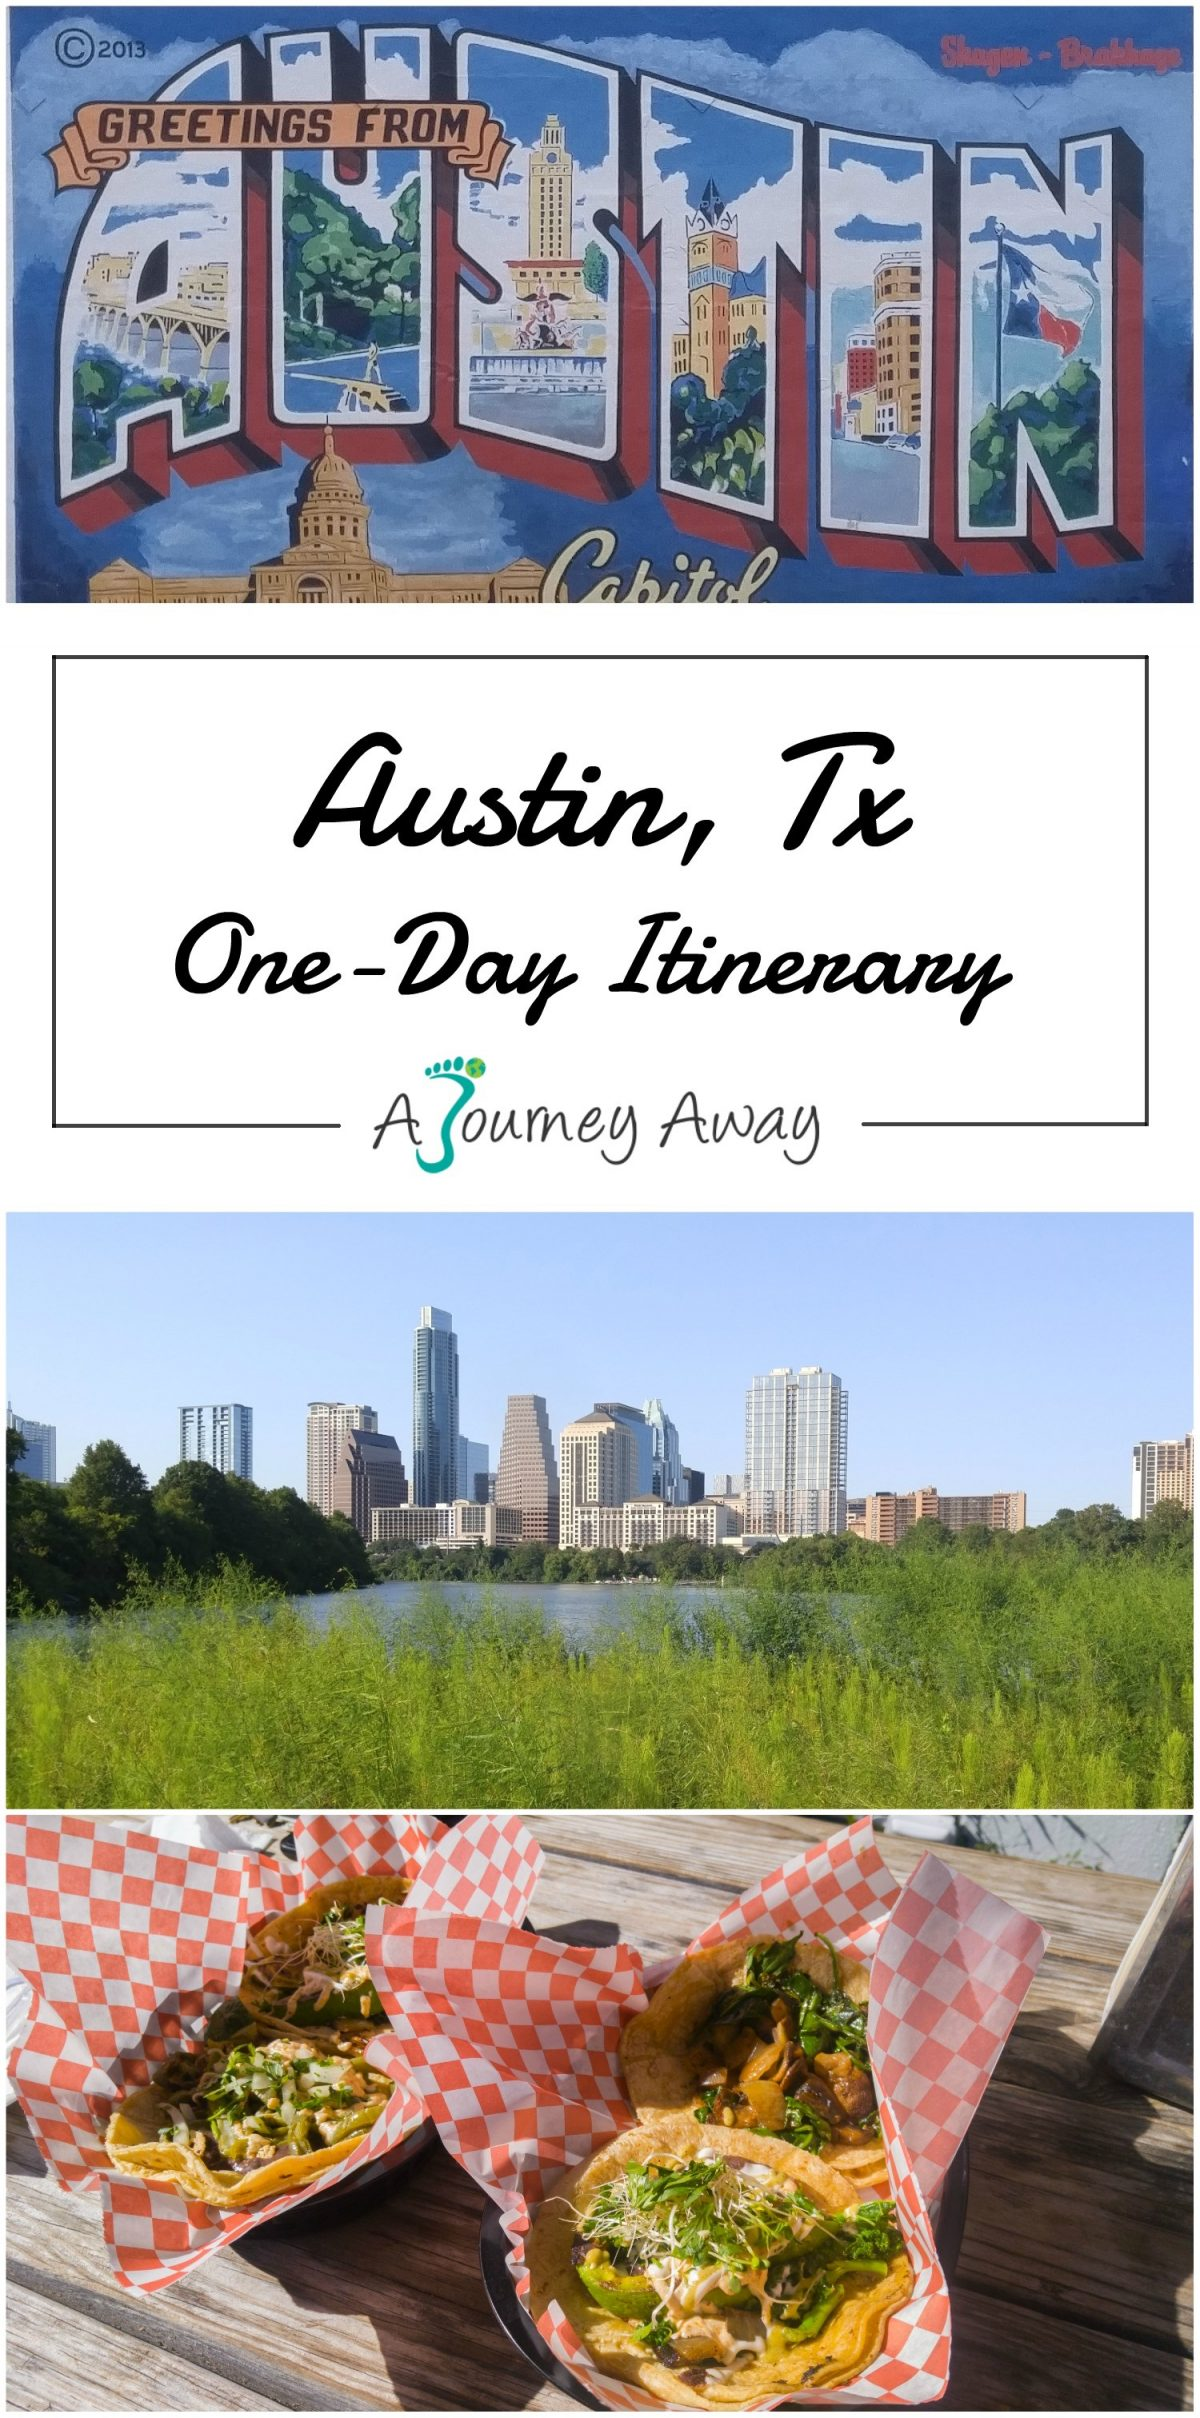 One-Day Itinerary in Austin, Texas for First-Timers | A Journey Away travel blog